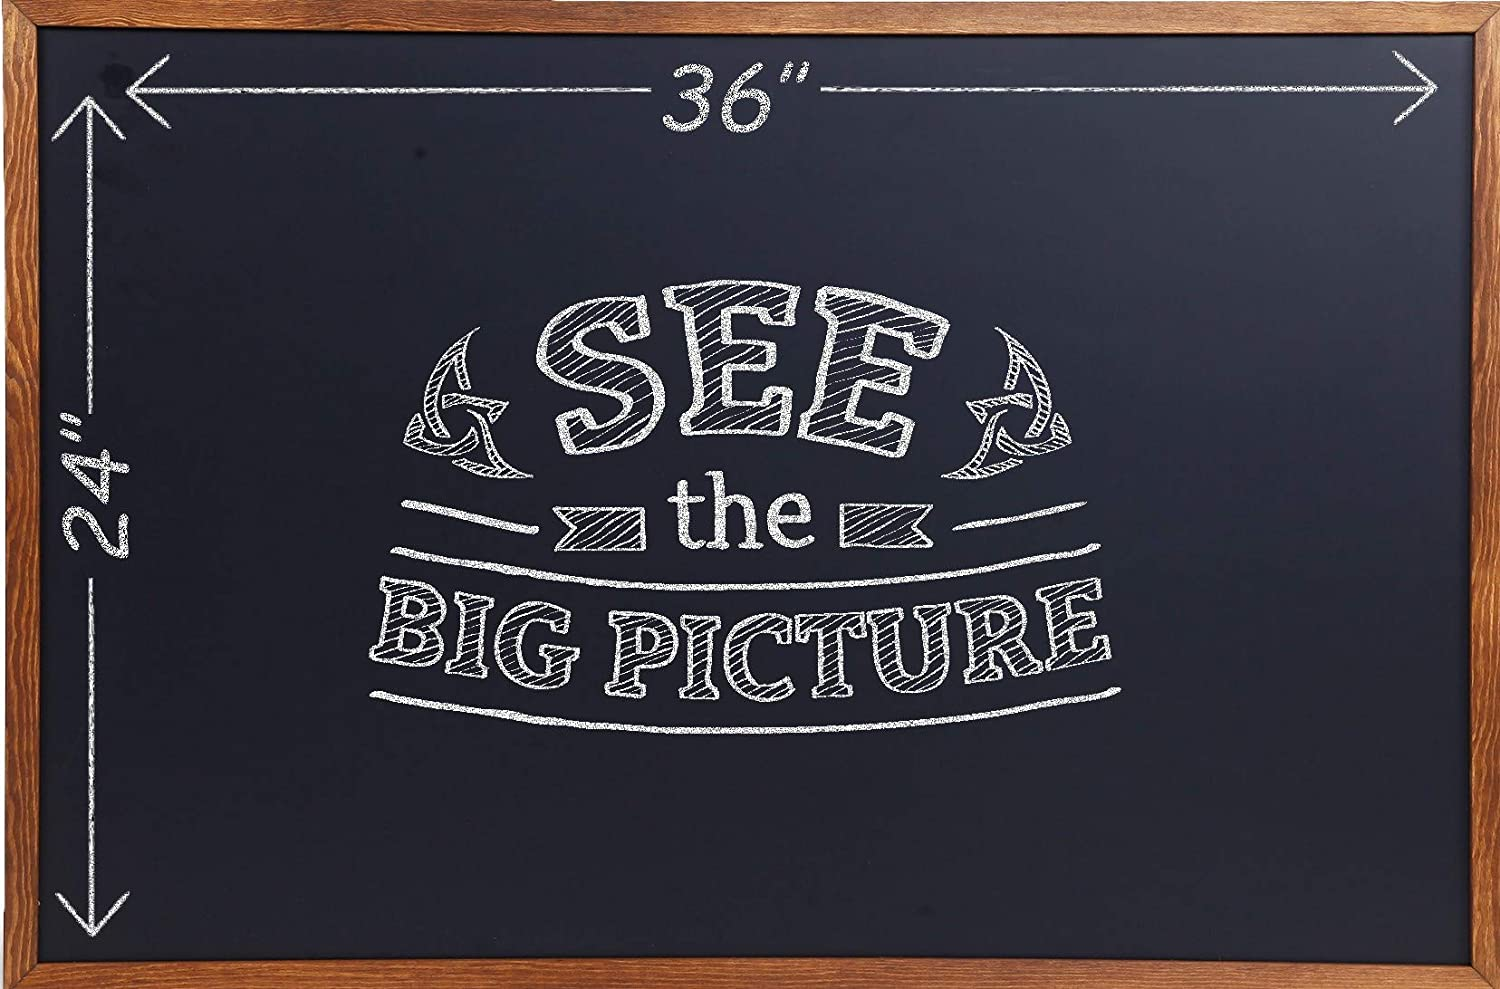 Wood Framed Chalkboard - Large Premium Magnetic 36 x 24 Rustic Chalk Board, Great with Regular or Liquid Chalk Markers, Nonporous Wall Hanging Blackboard Sign Besso Boards